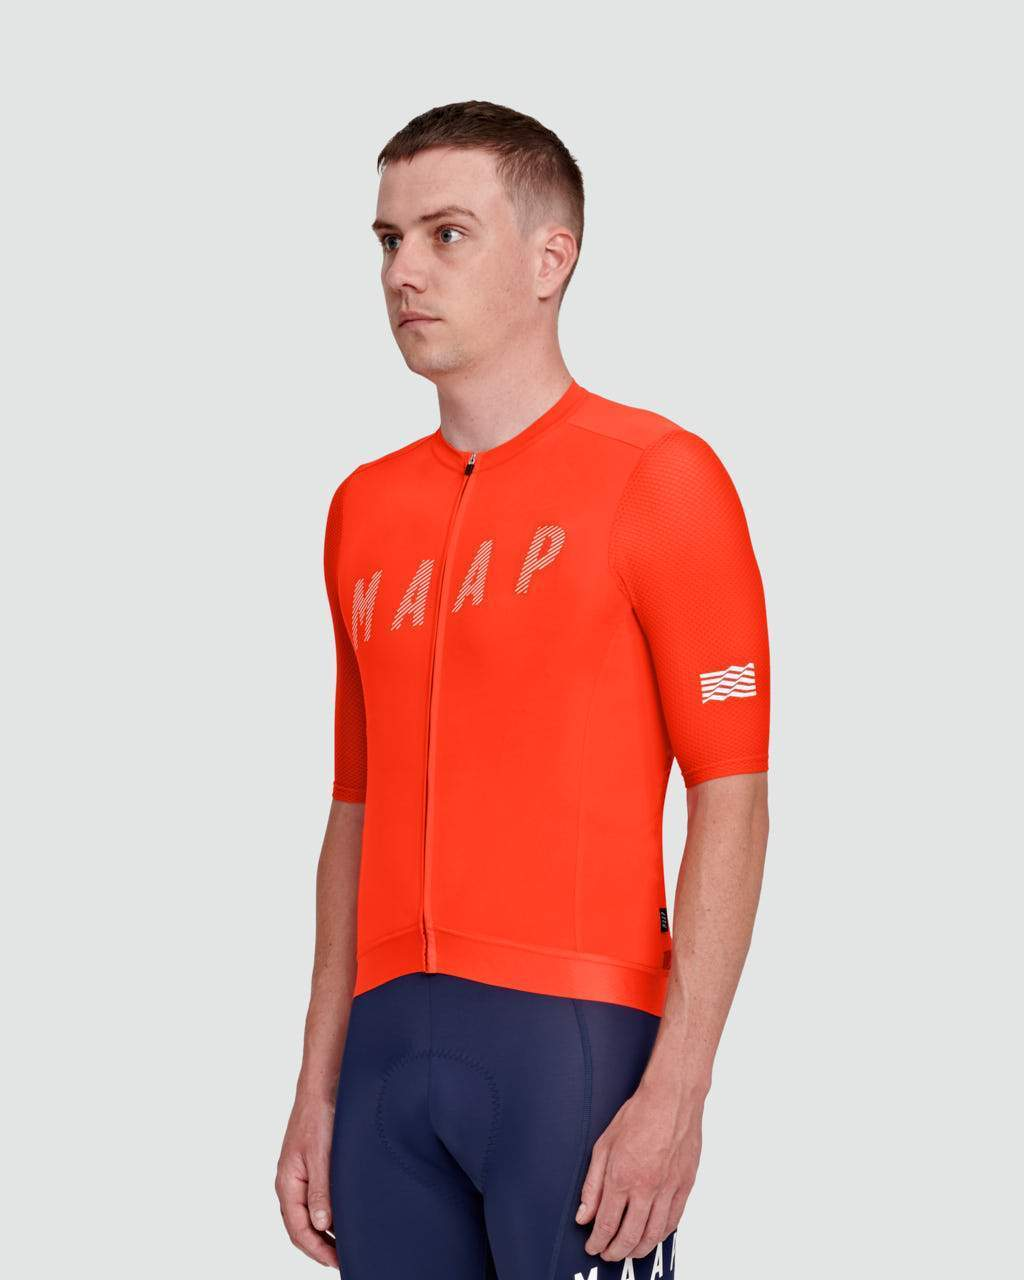 Echo Pro Base Jersey - Chili Cycling Jersey MAAP